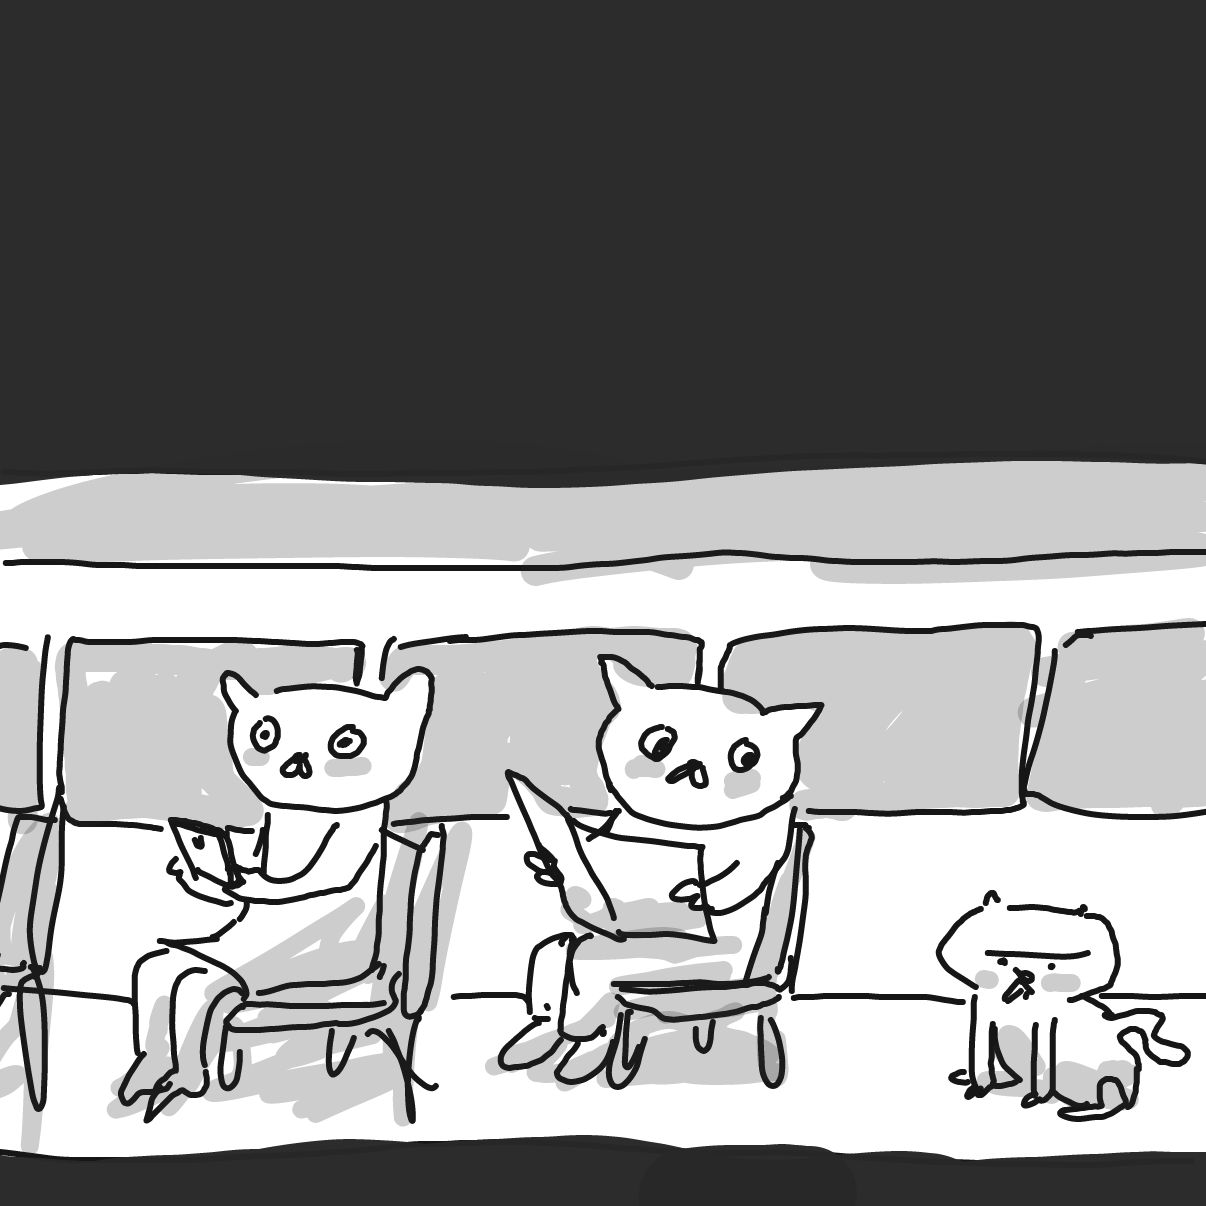 Drawing in Carl Cat by Potato Man